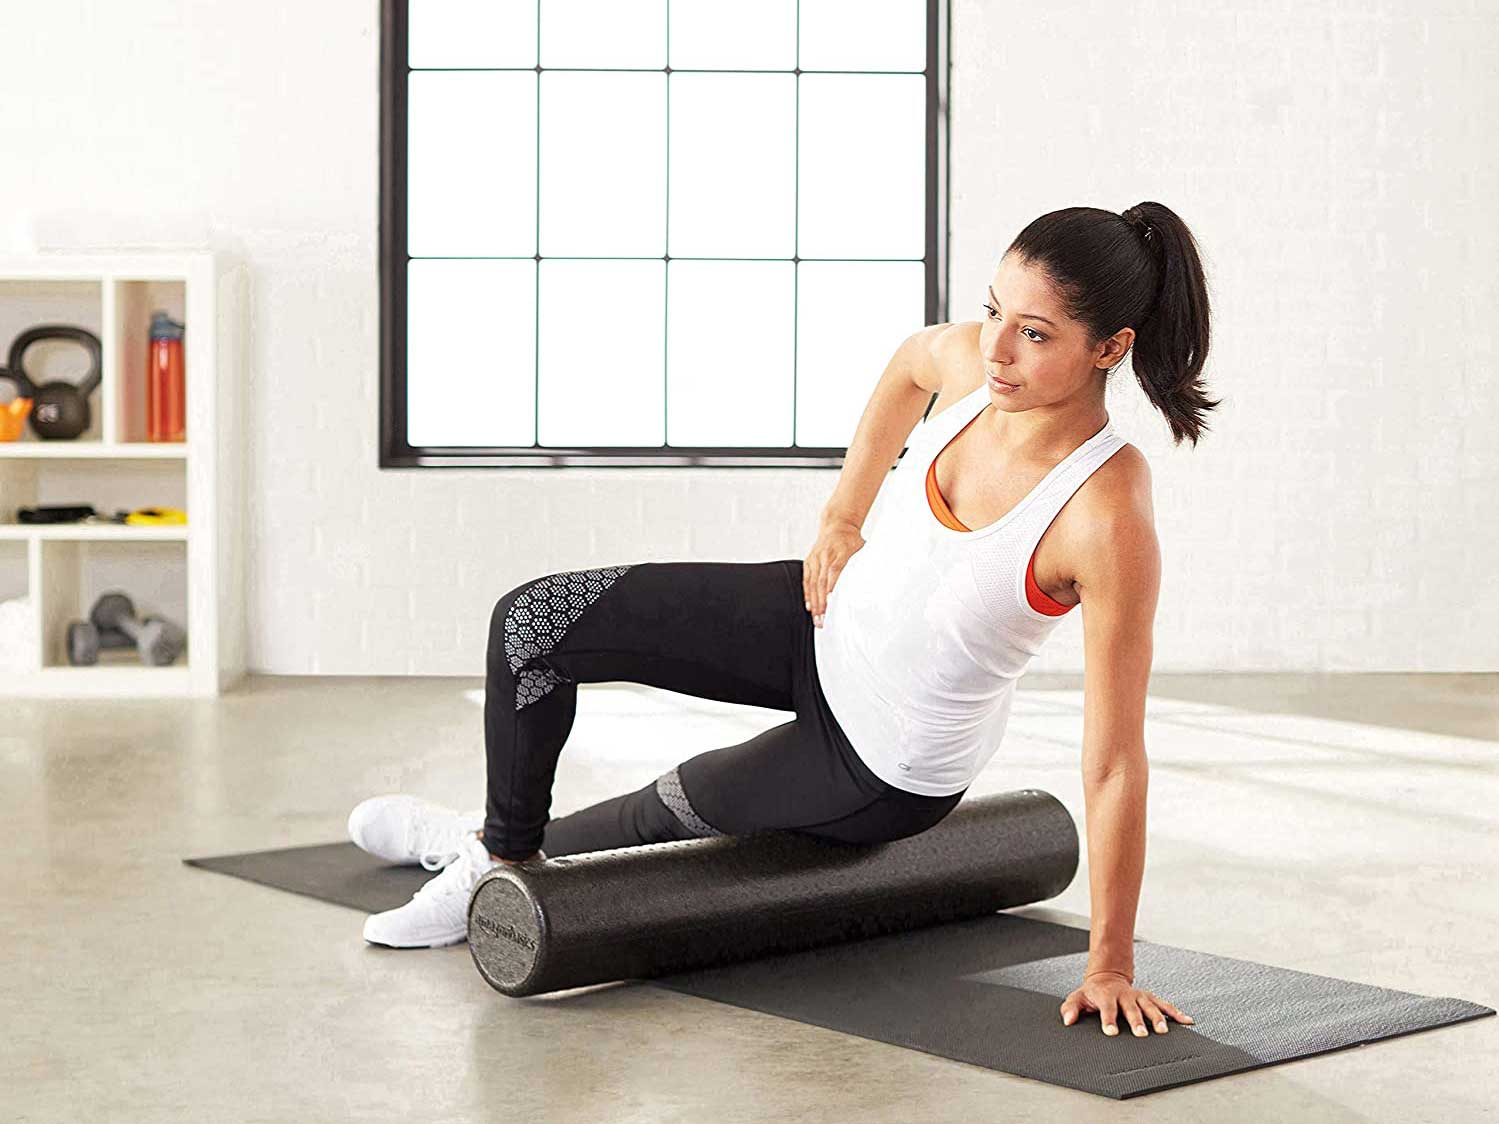 Woman stretching on foam roller.